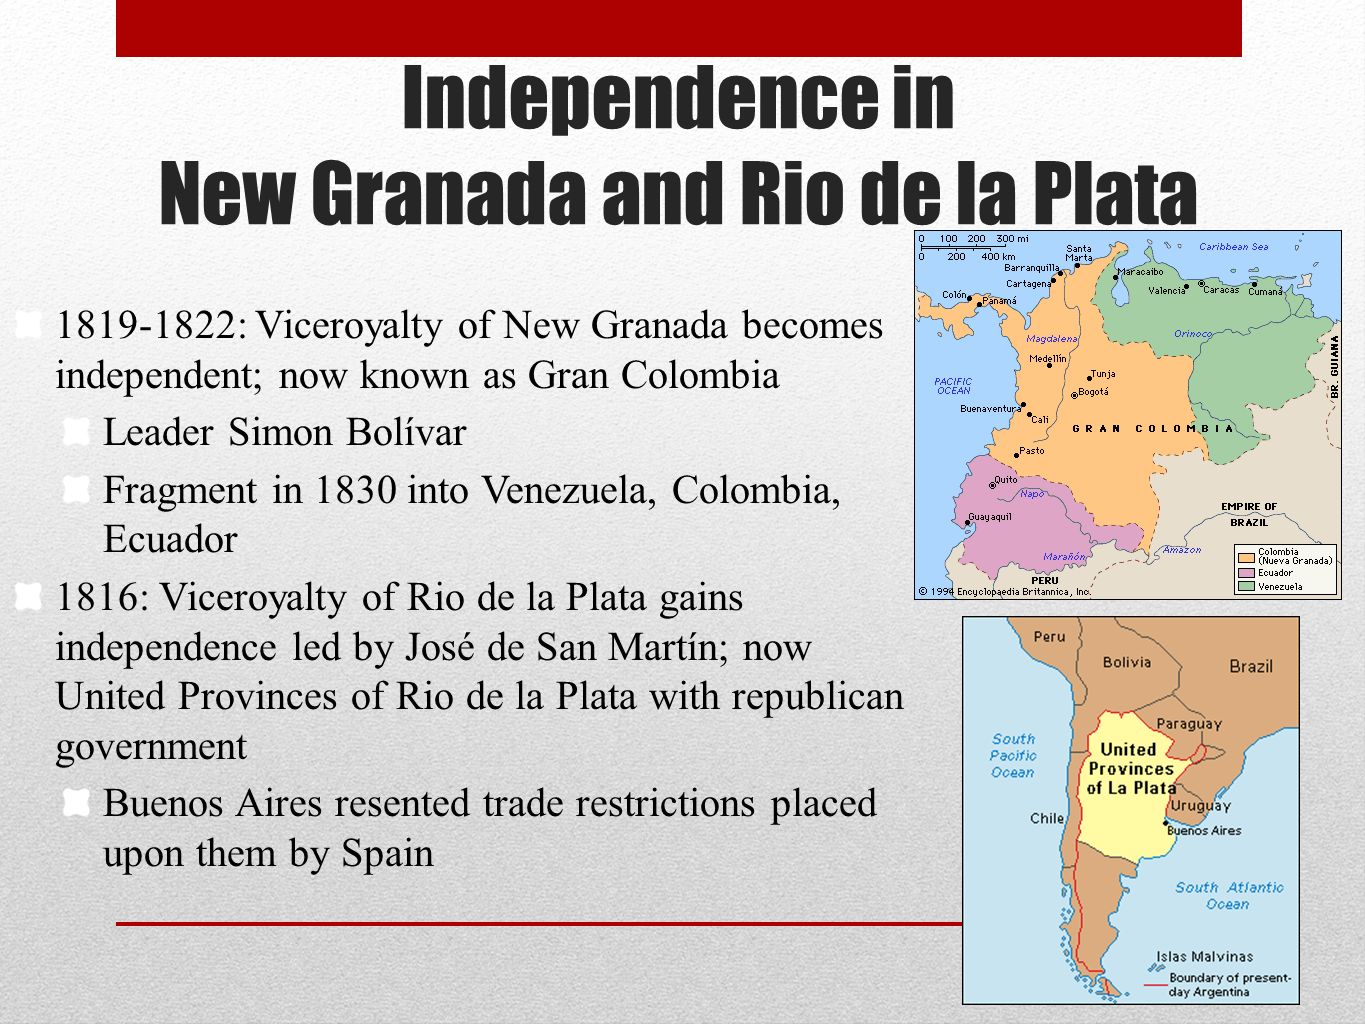 Independence in New Granada and Rio de la Plata